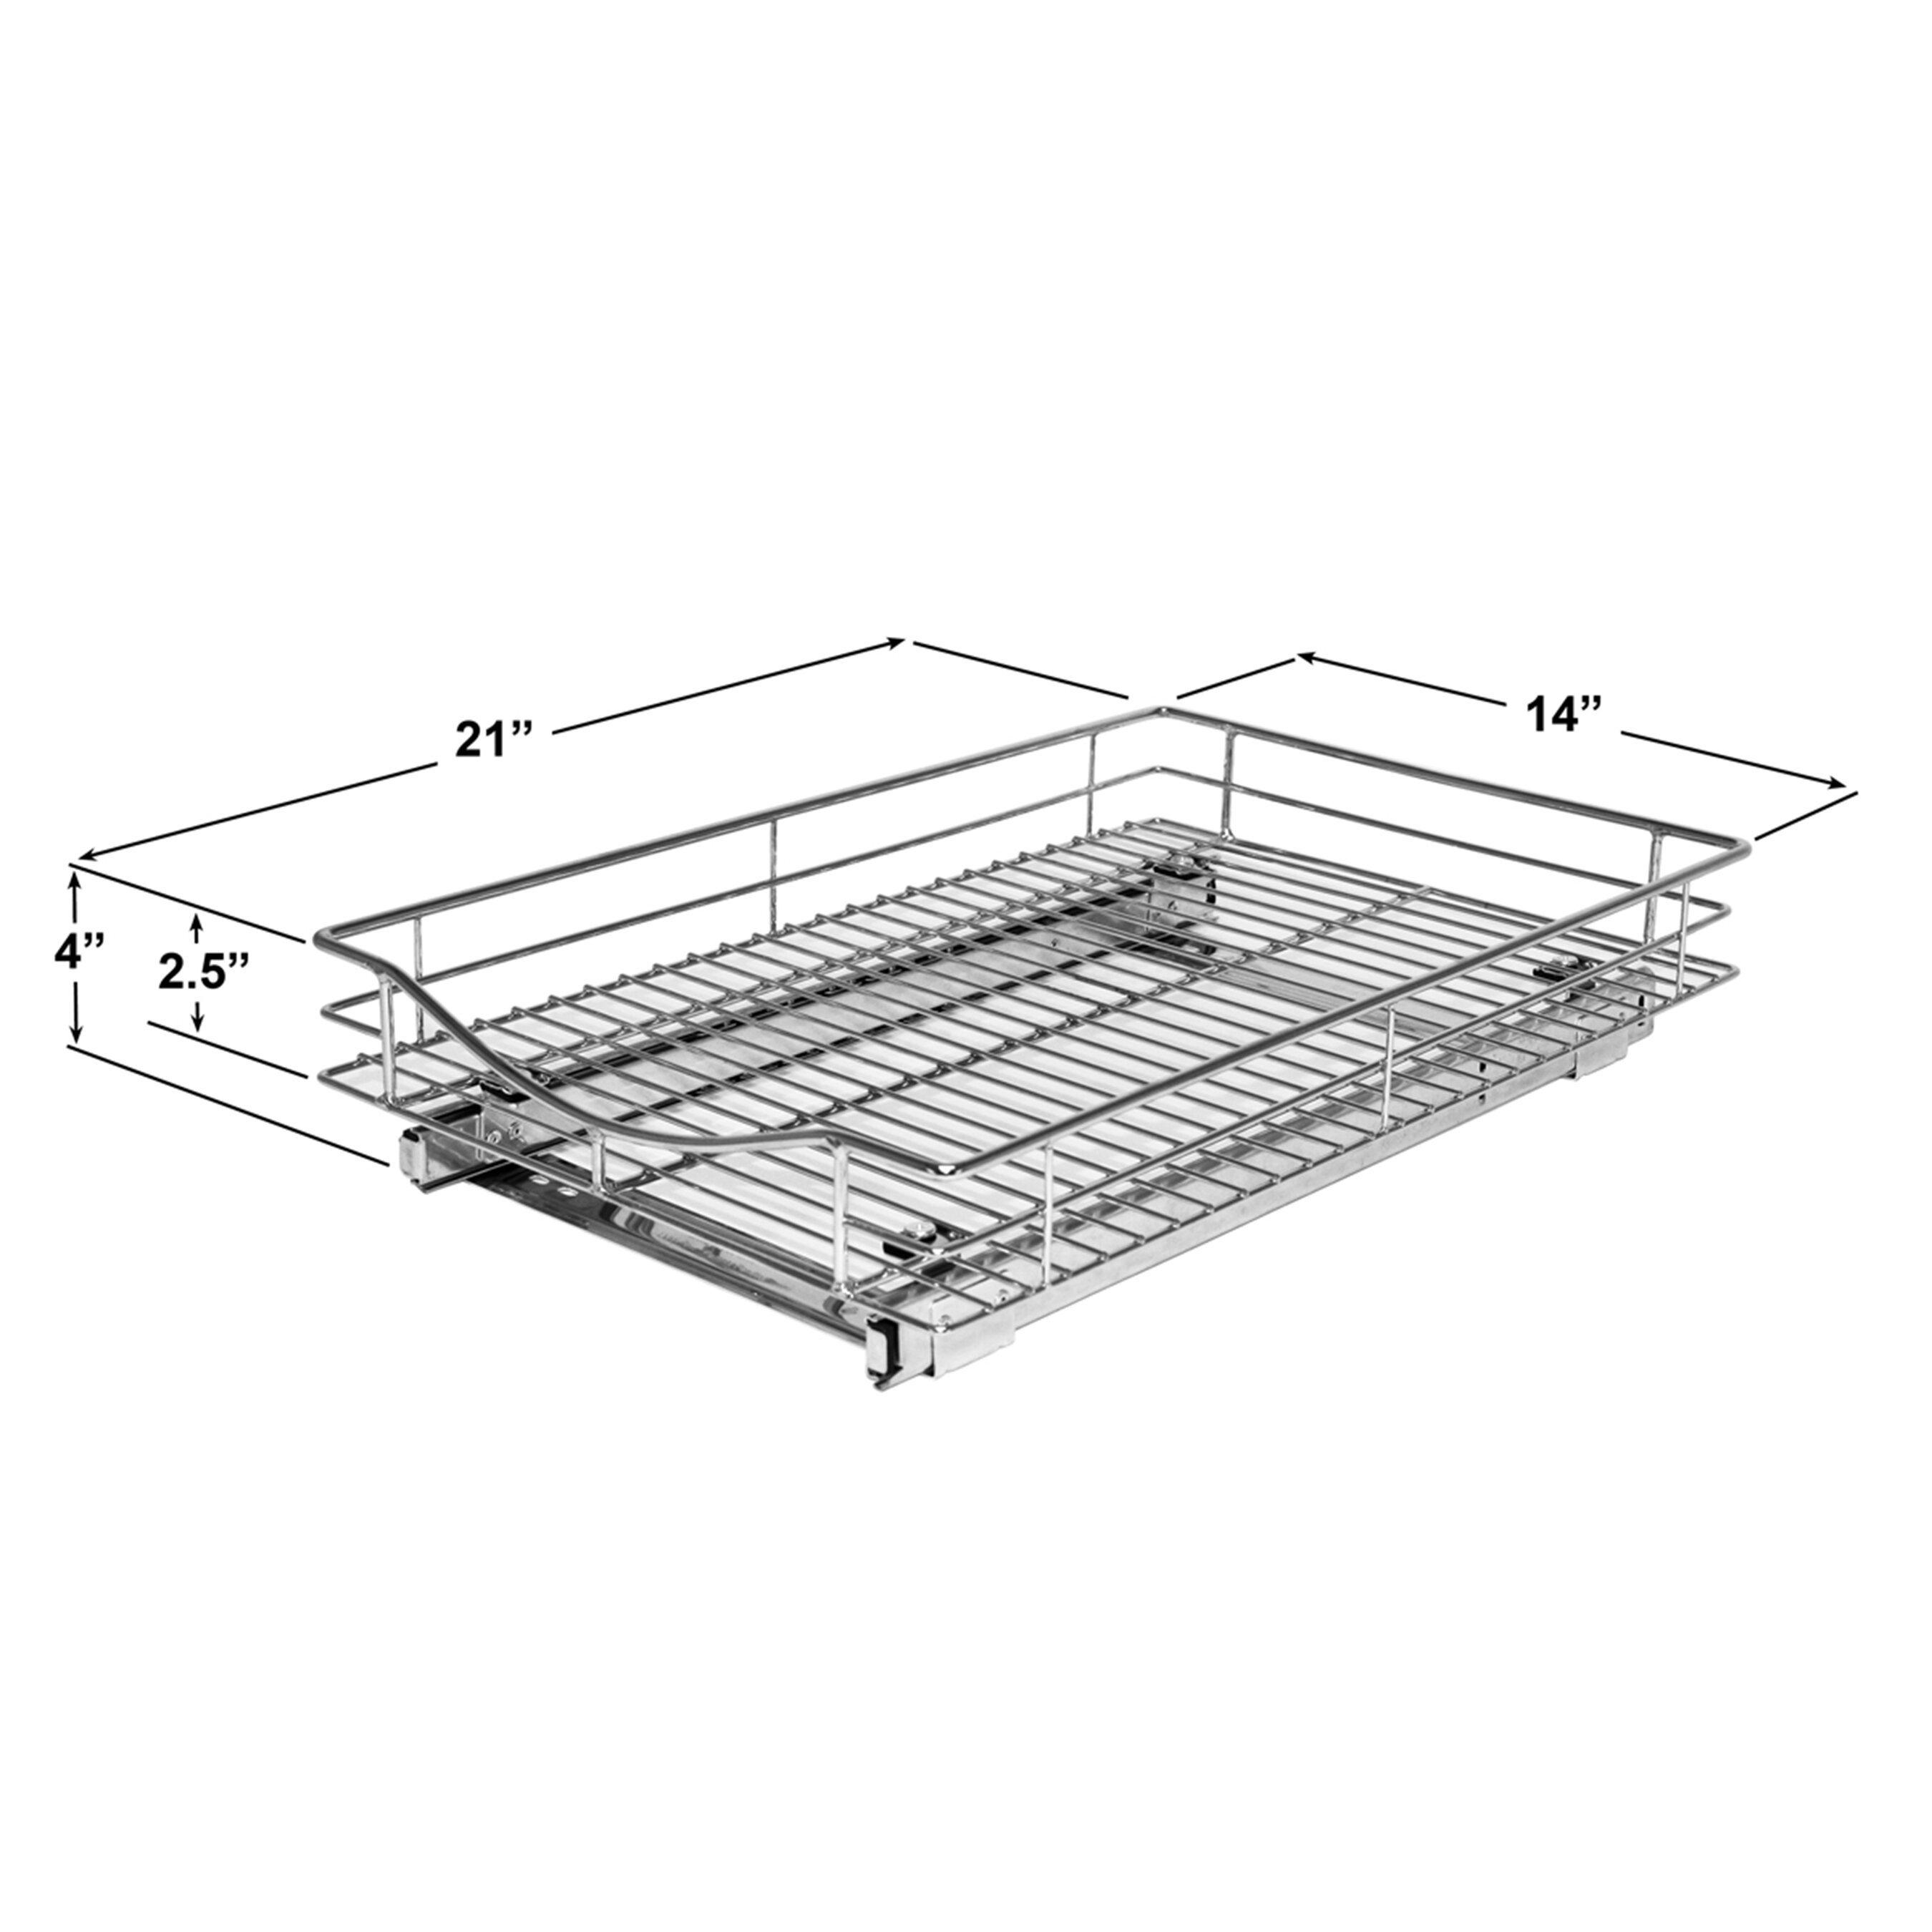 Lynk Roll Out Double Shelf: Lynk Lynk Professional Roll Out Cabinet Organizer